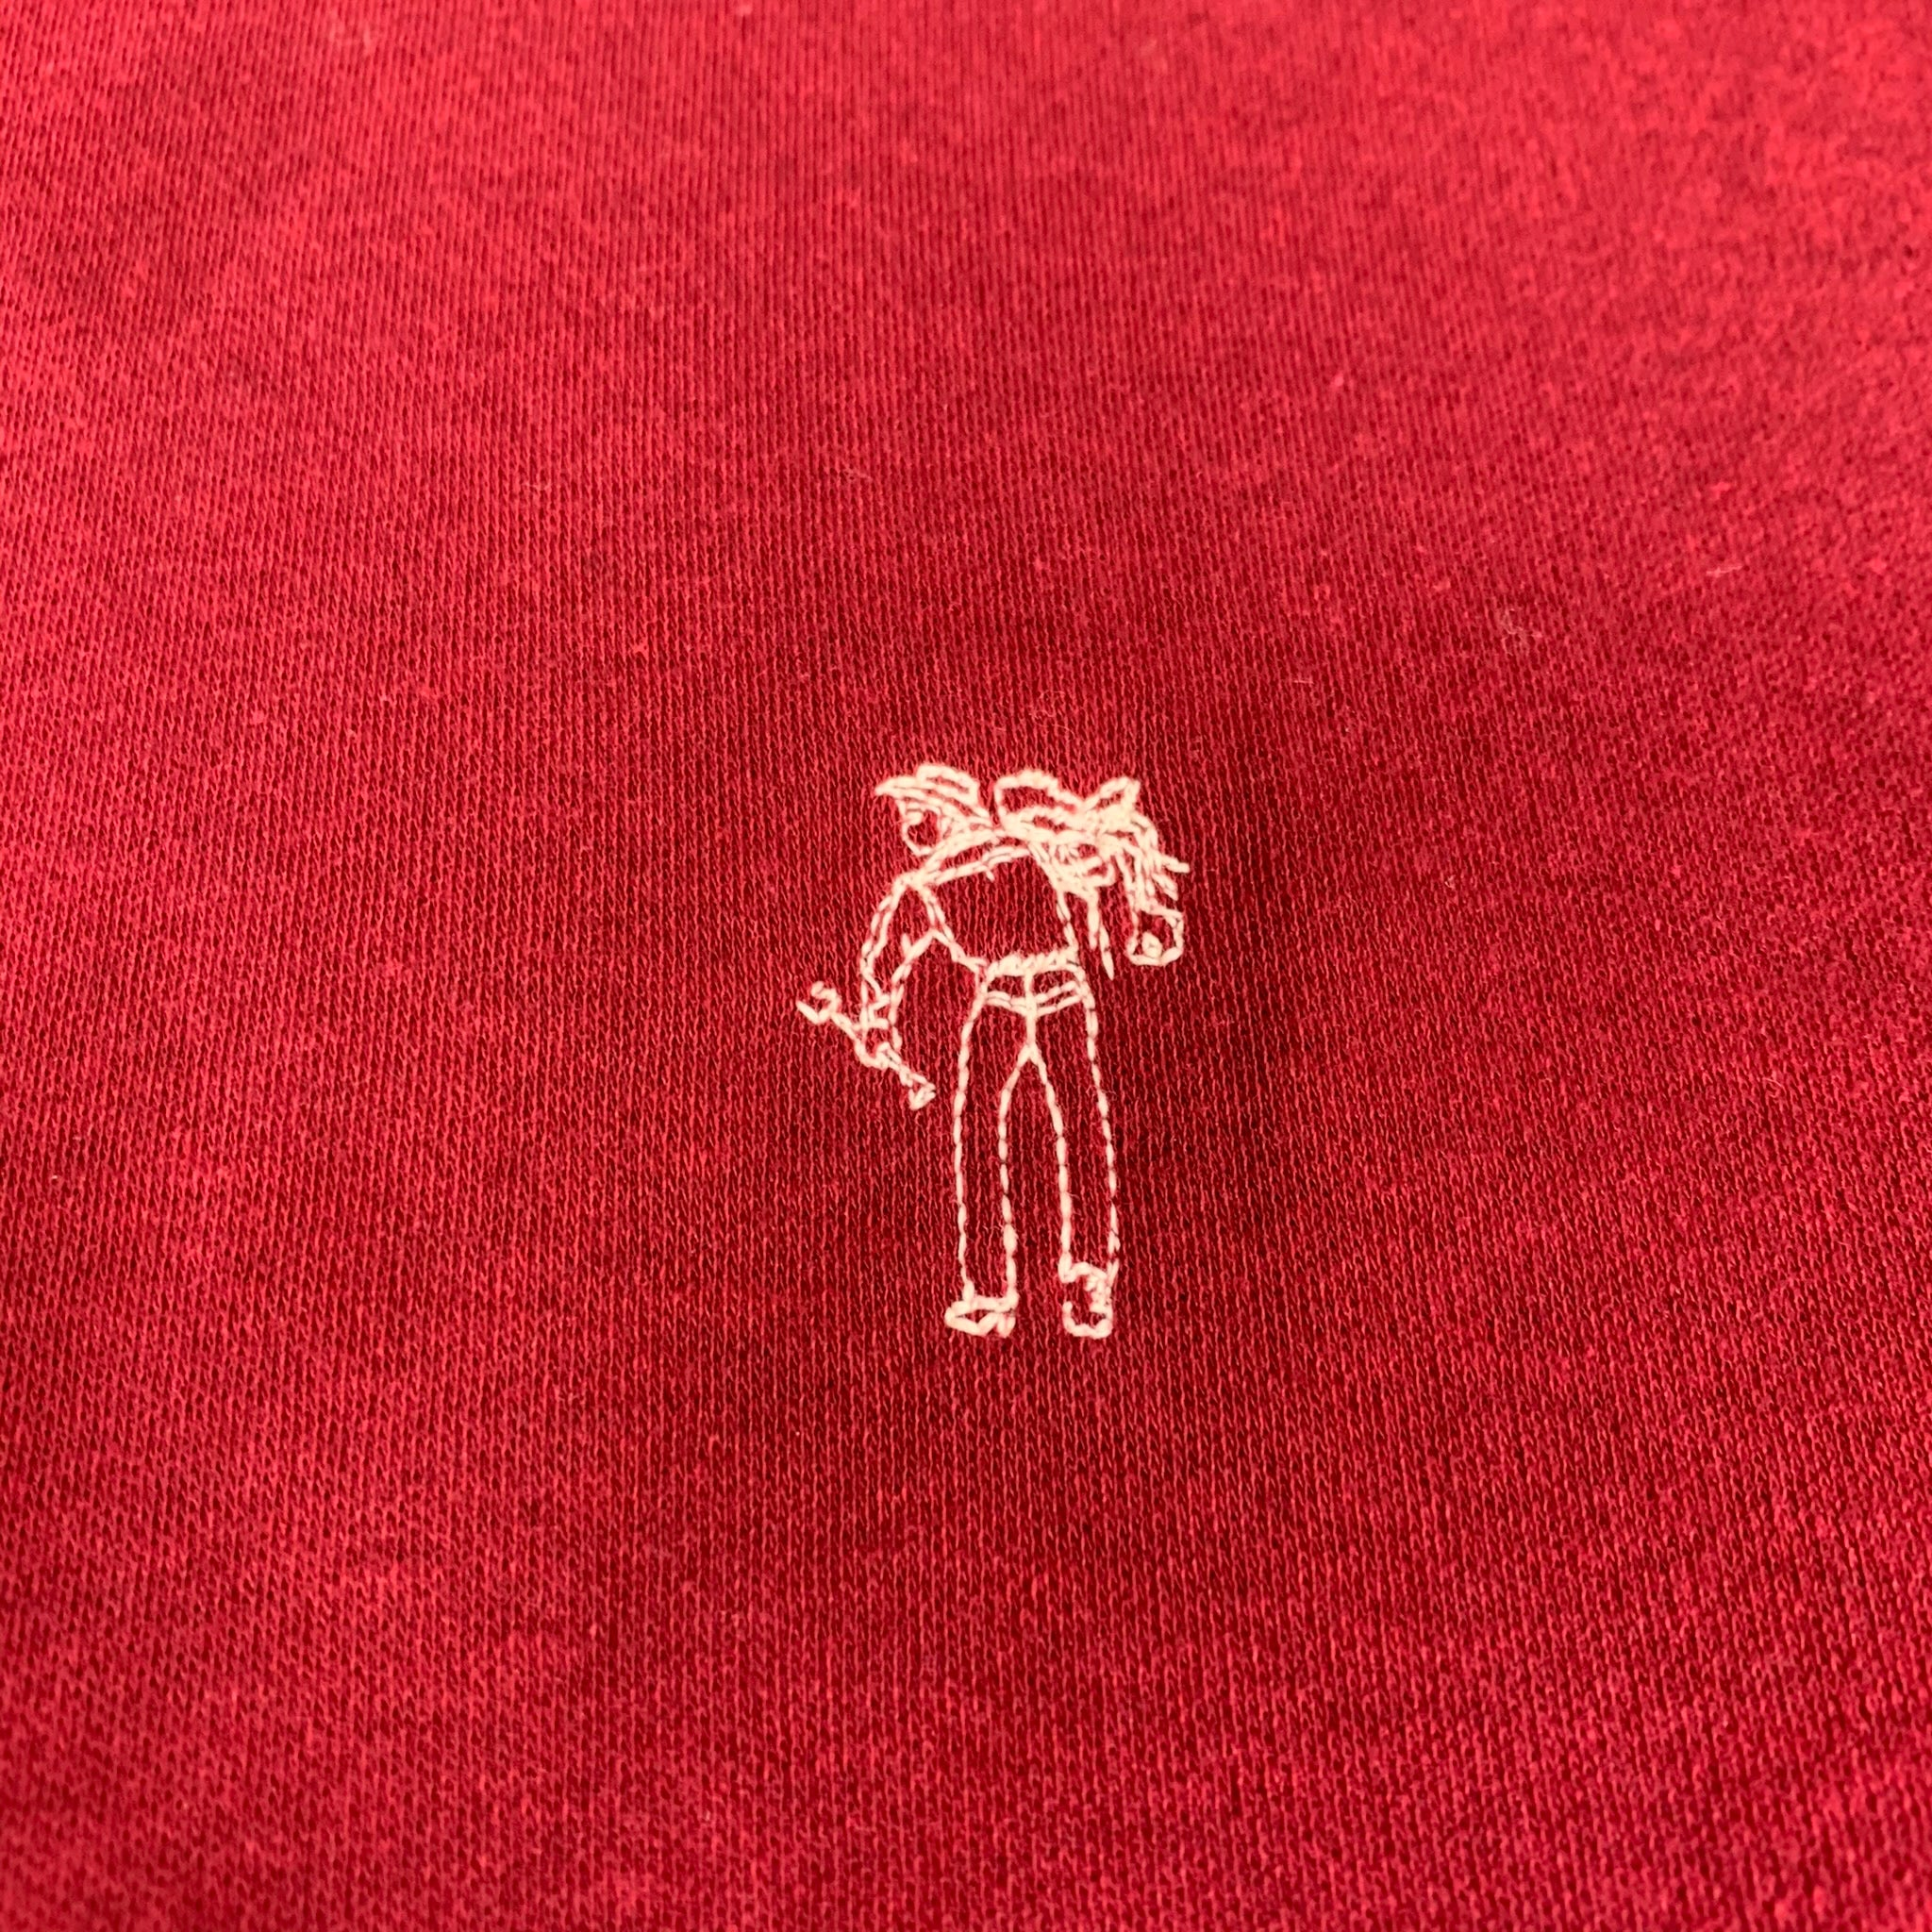 Rare 70s 80s LEVIS Dacron Polyester Embroidered Cowboy T-Shirt